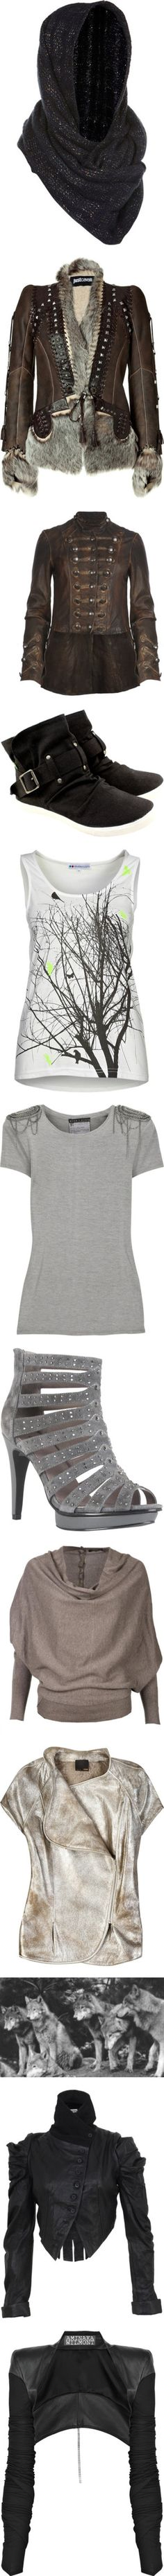 """""""Arya Stark"""" by summersdream ❤ liked on Polyvore"""